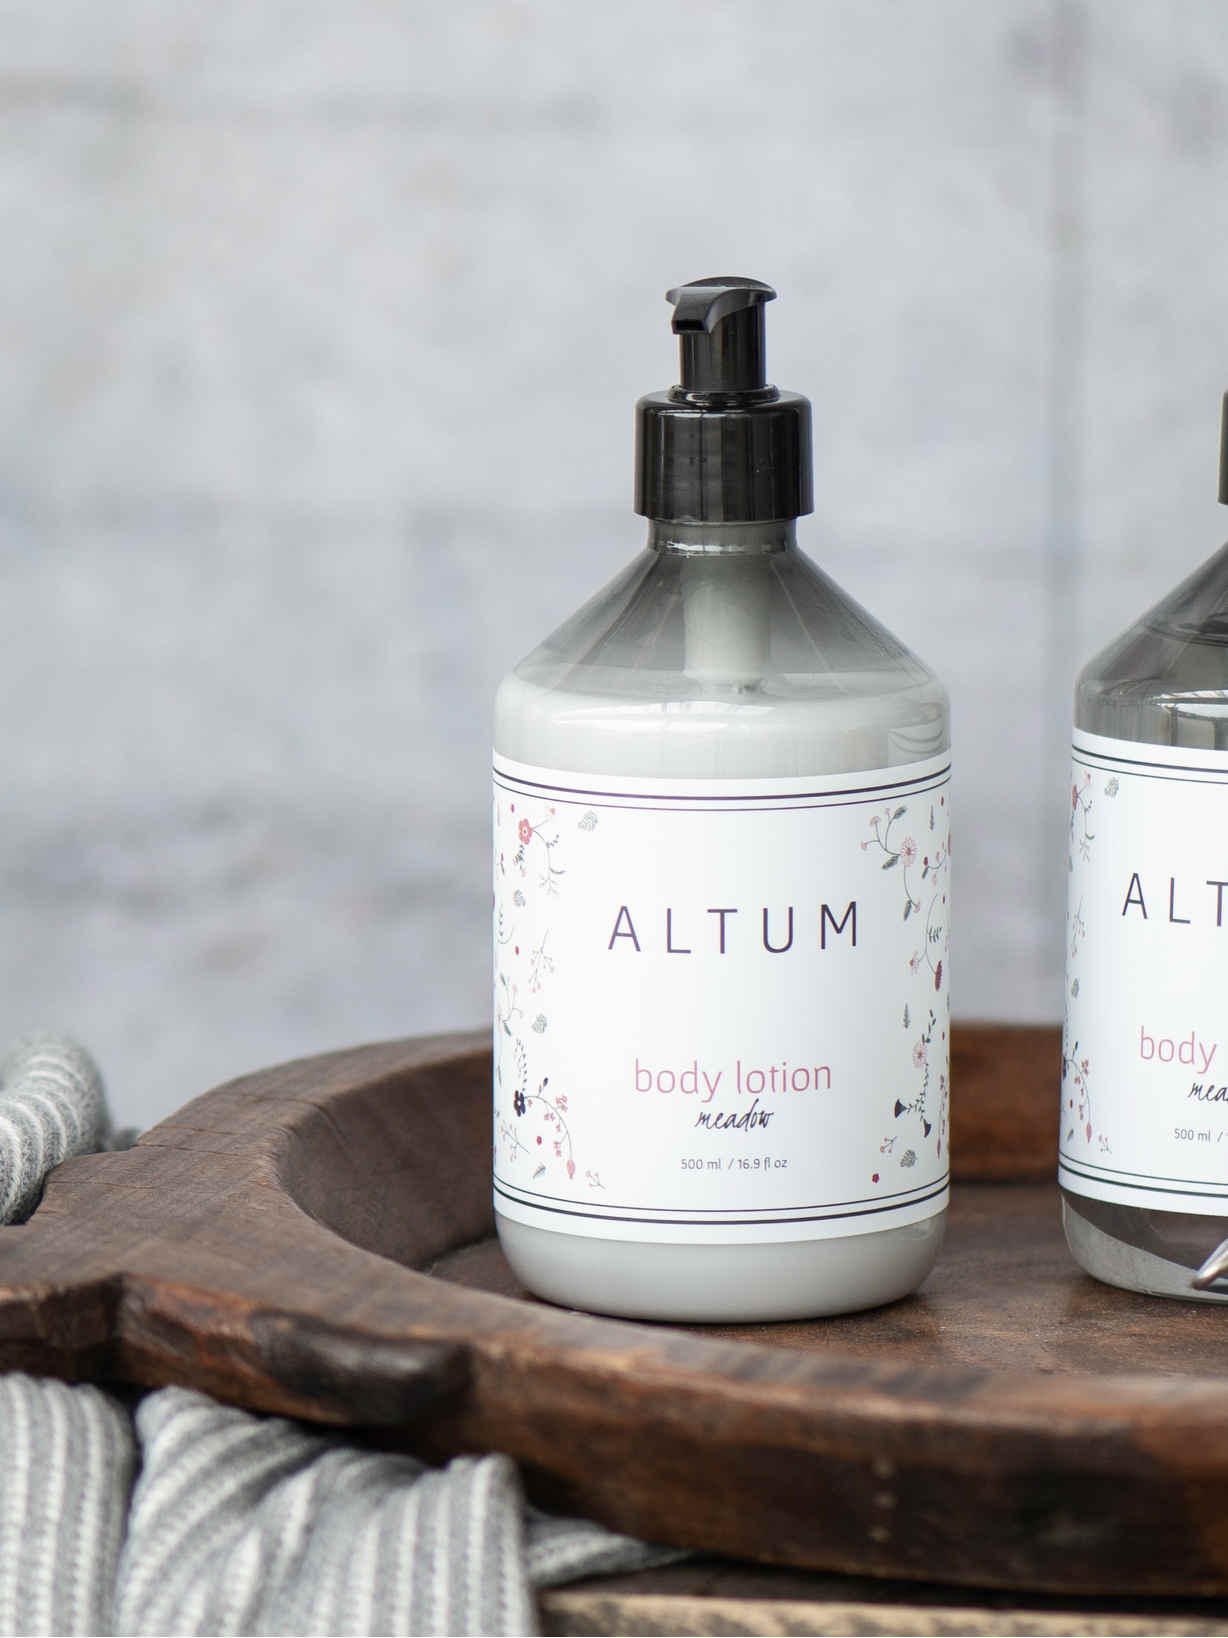 Nordic House Altum Body Lotion - Meadow